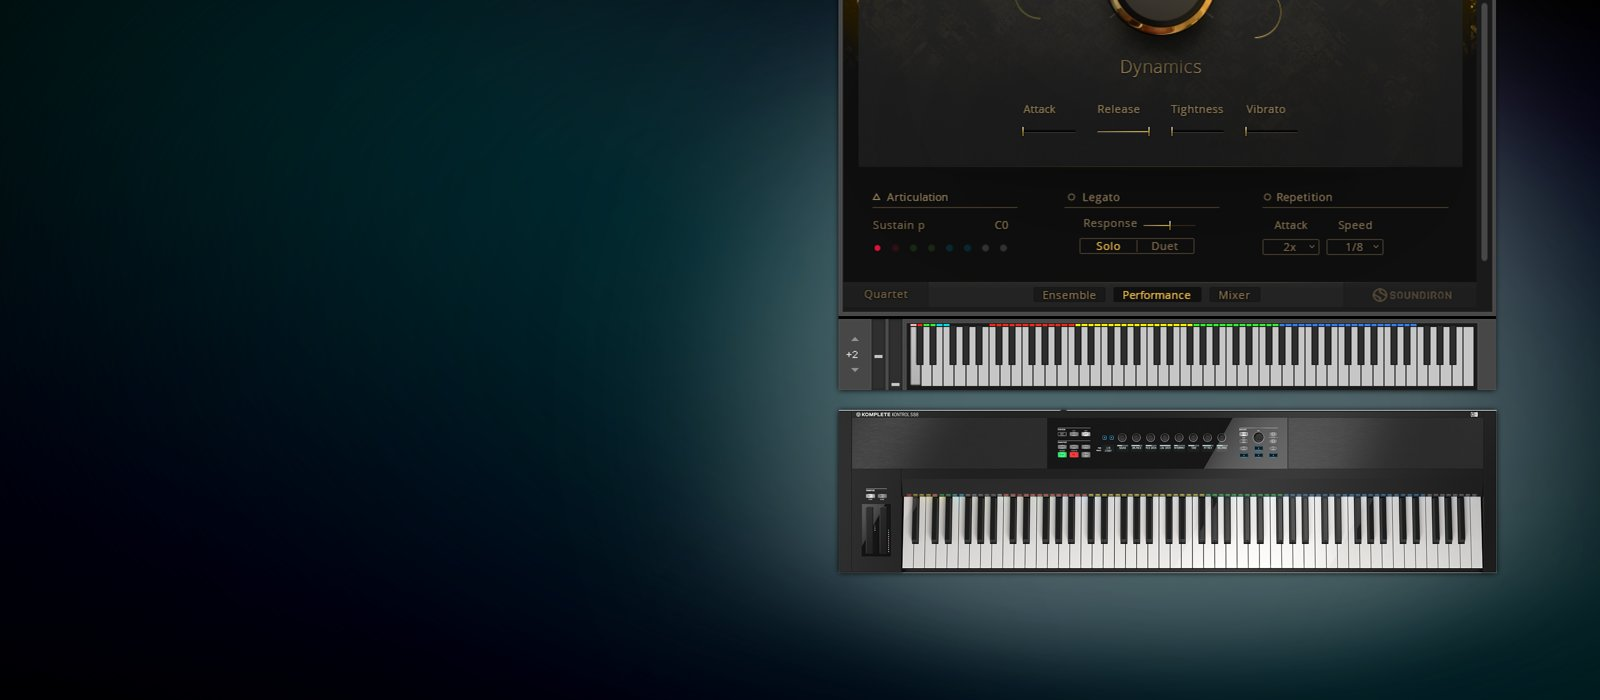 Kontakt 5 manual download -  When Looking For Key Switches Setting Up Key Splits And More It Also Helps Instrument Builders Turn Their Original Concept Into An Integrated